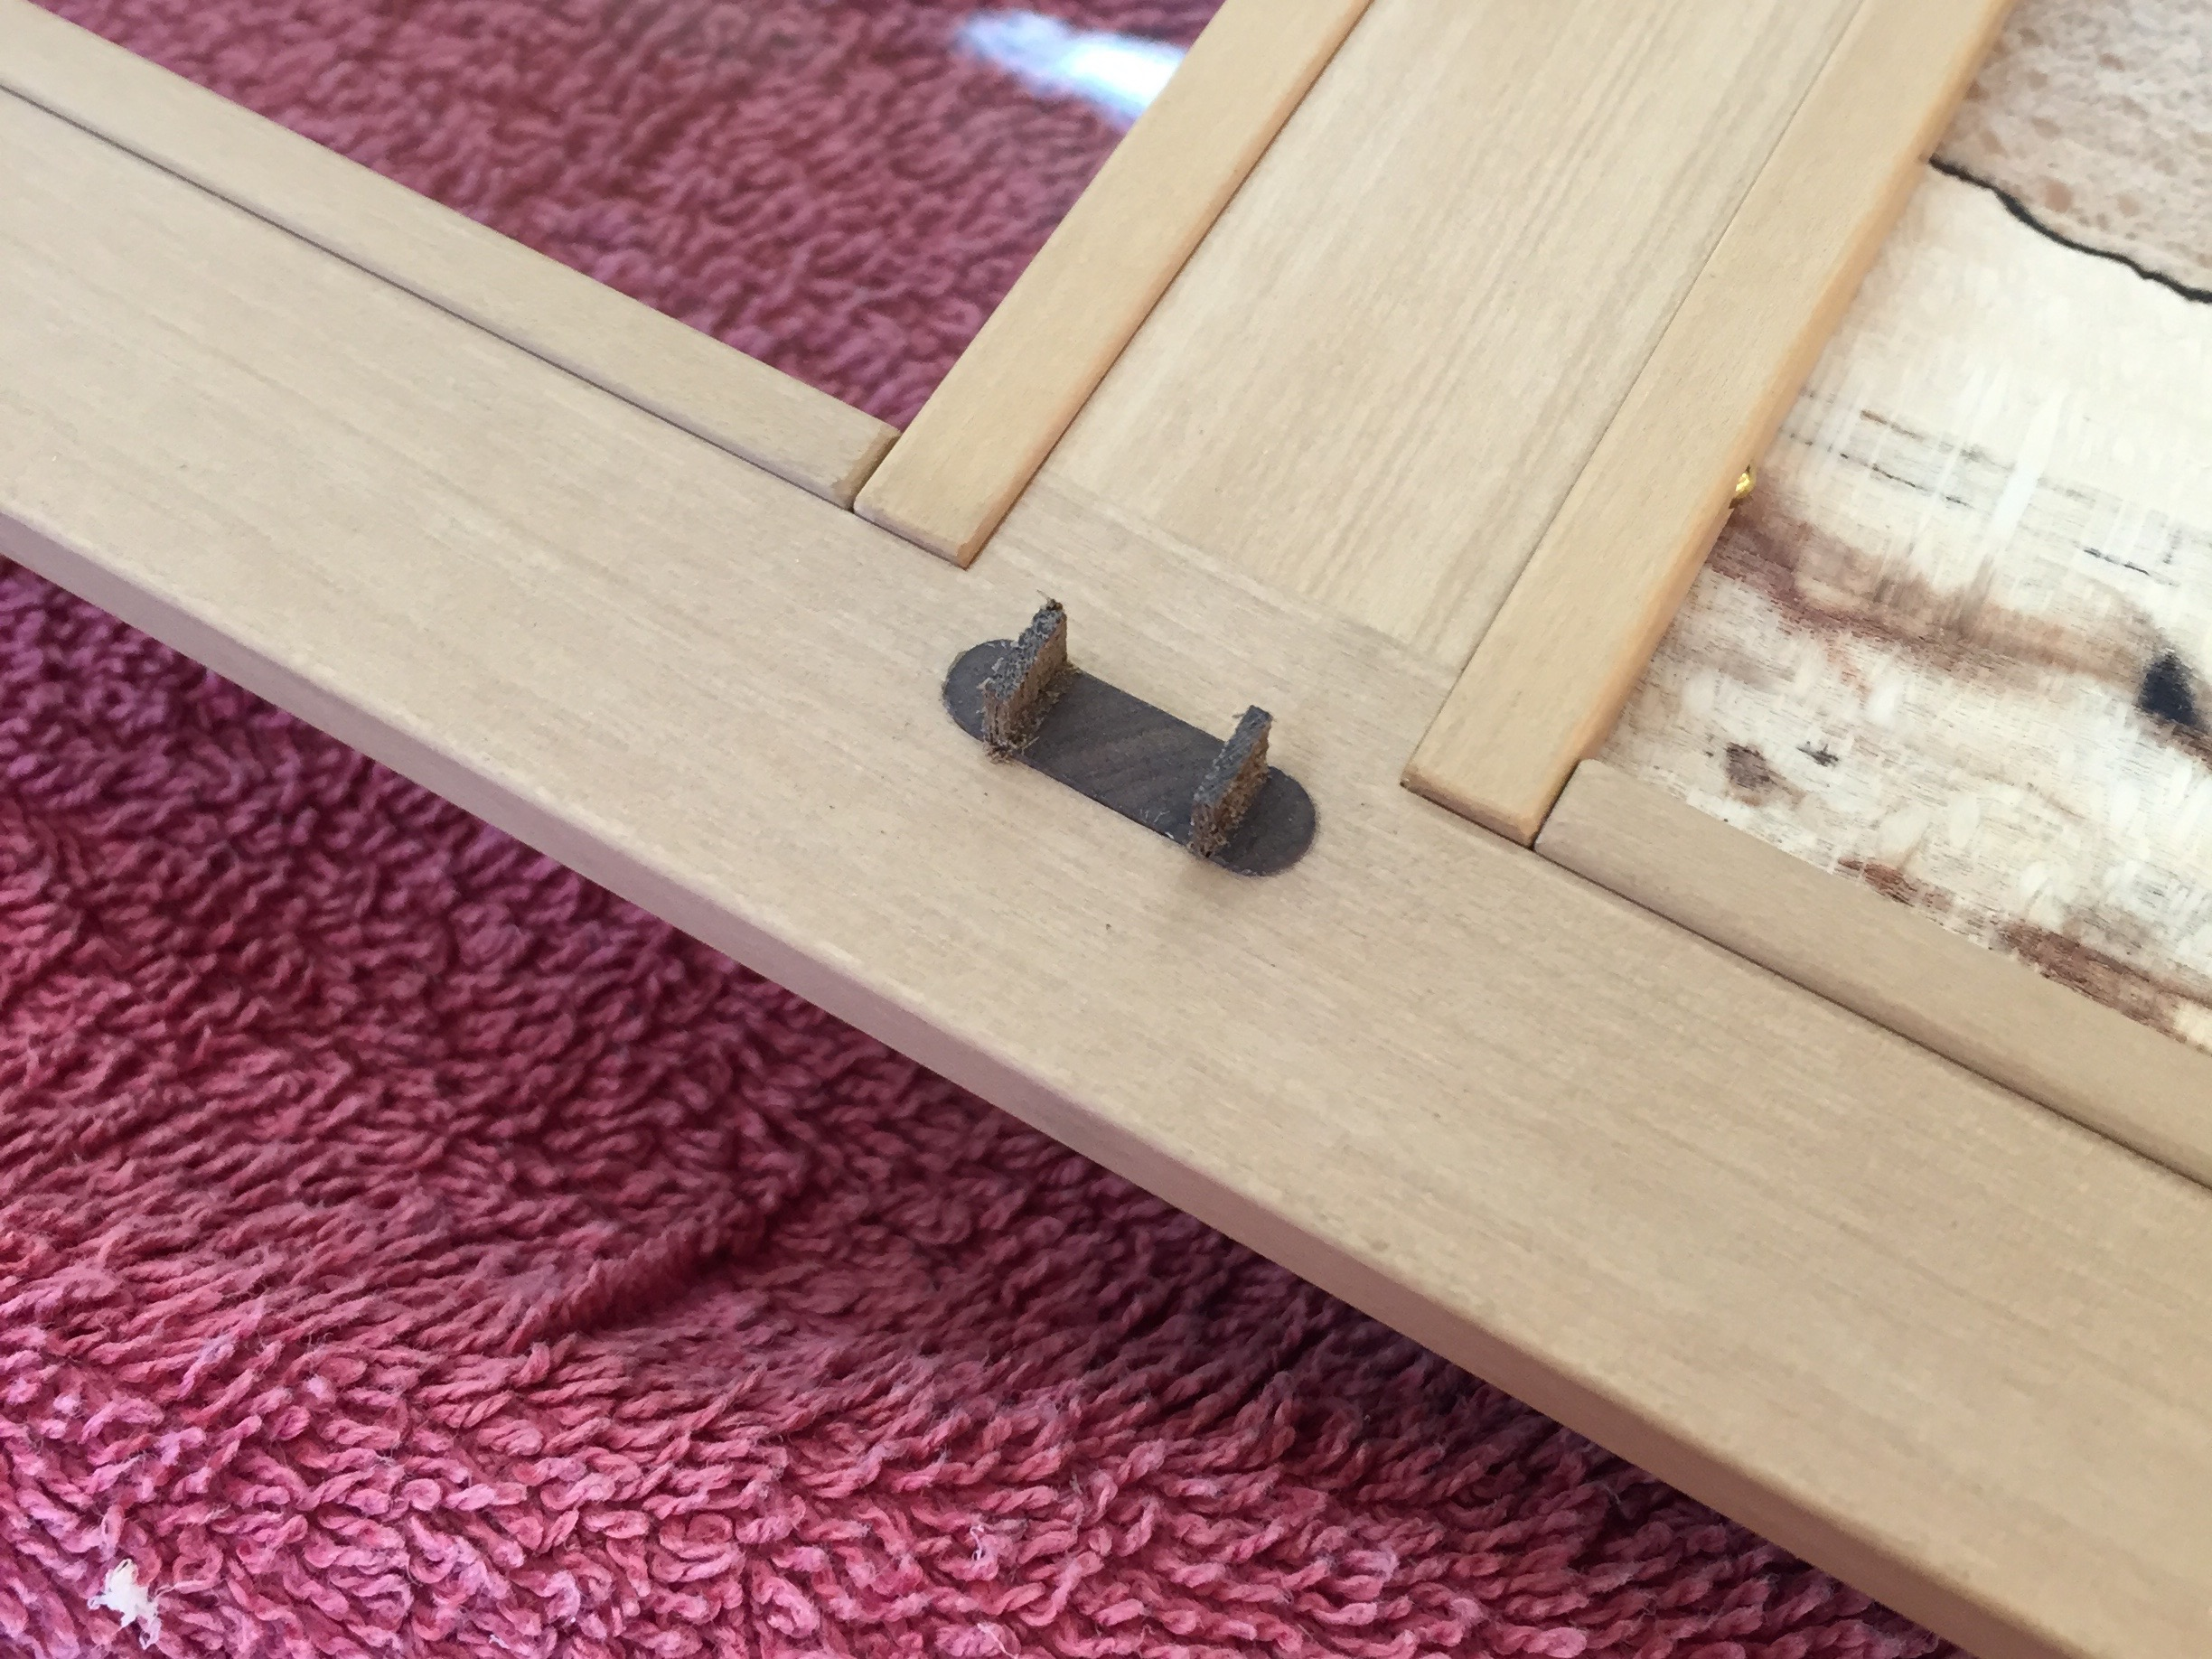 Through and wedged tenons on the pulls